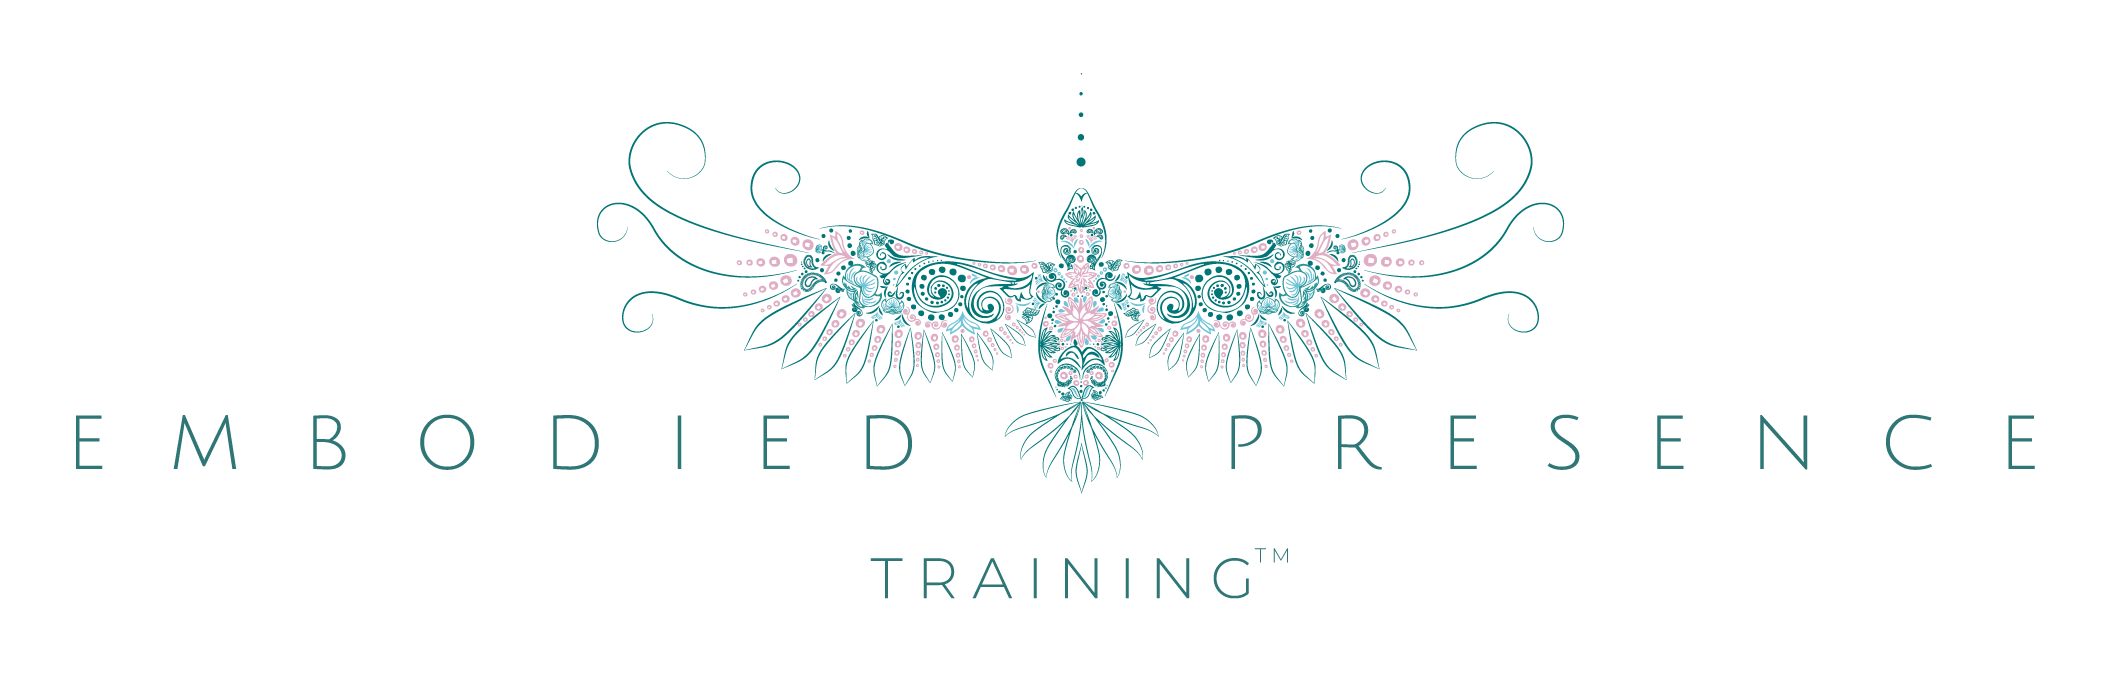 Embodies  Presence Training - Logo Transparent